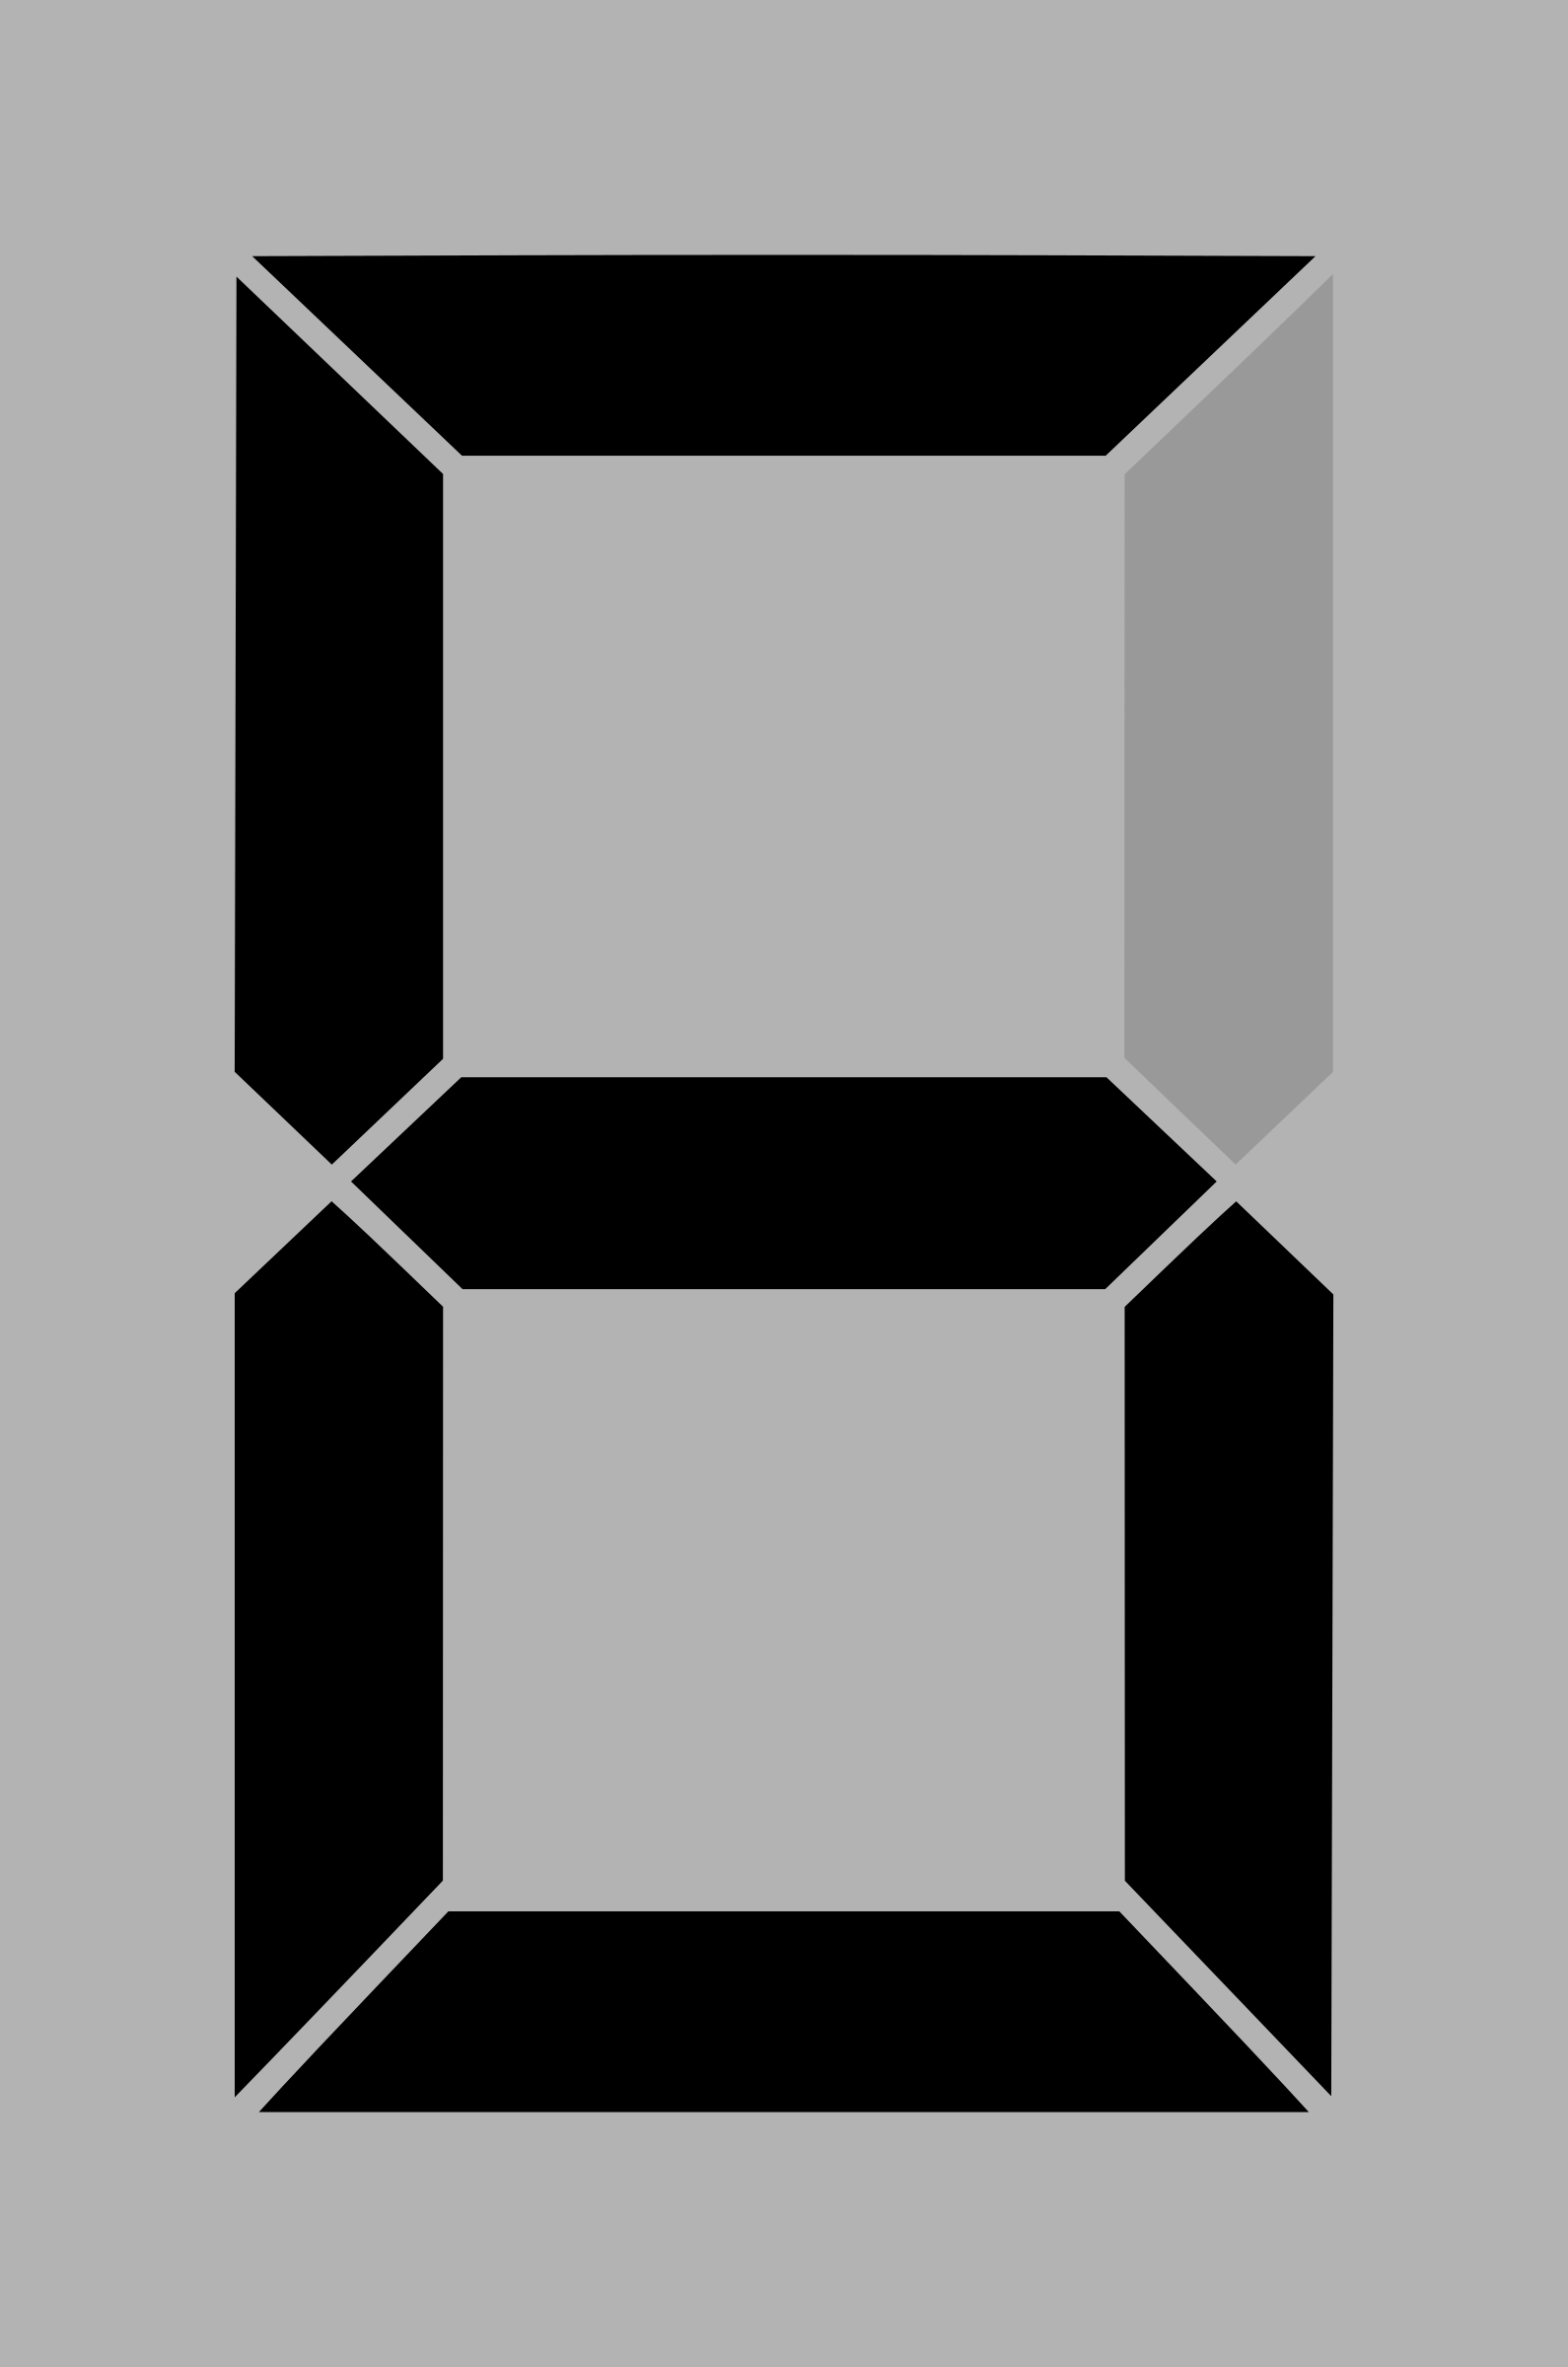 Seven segment display gray 6 by alex8664